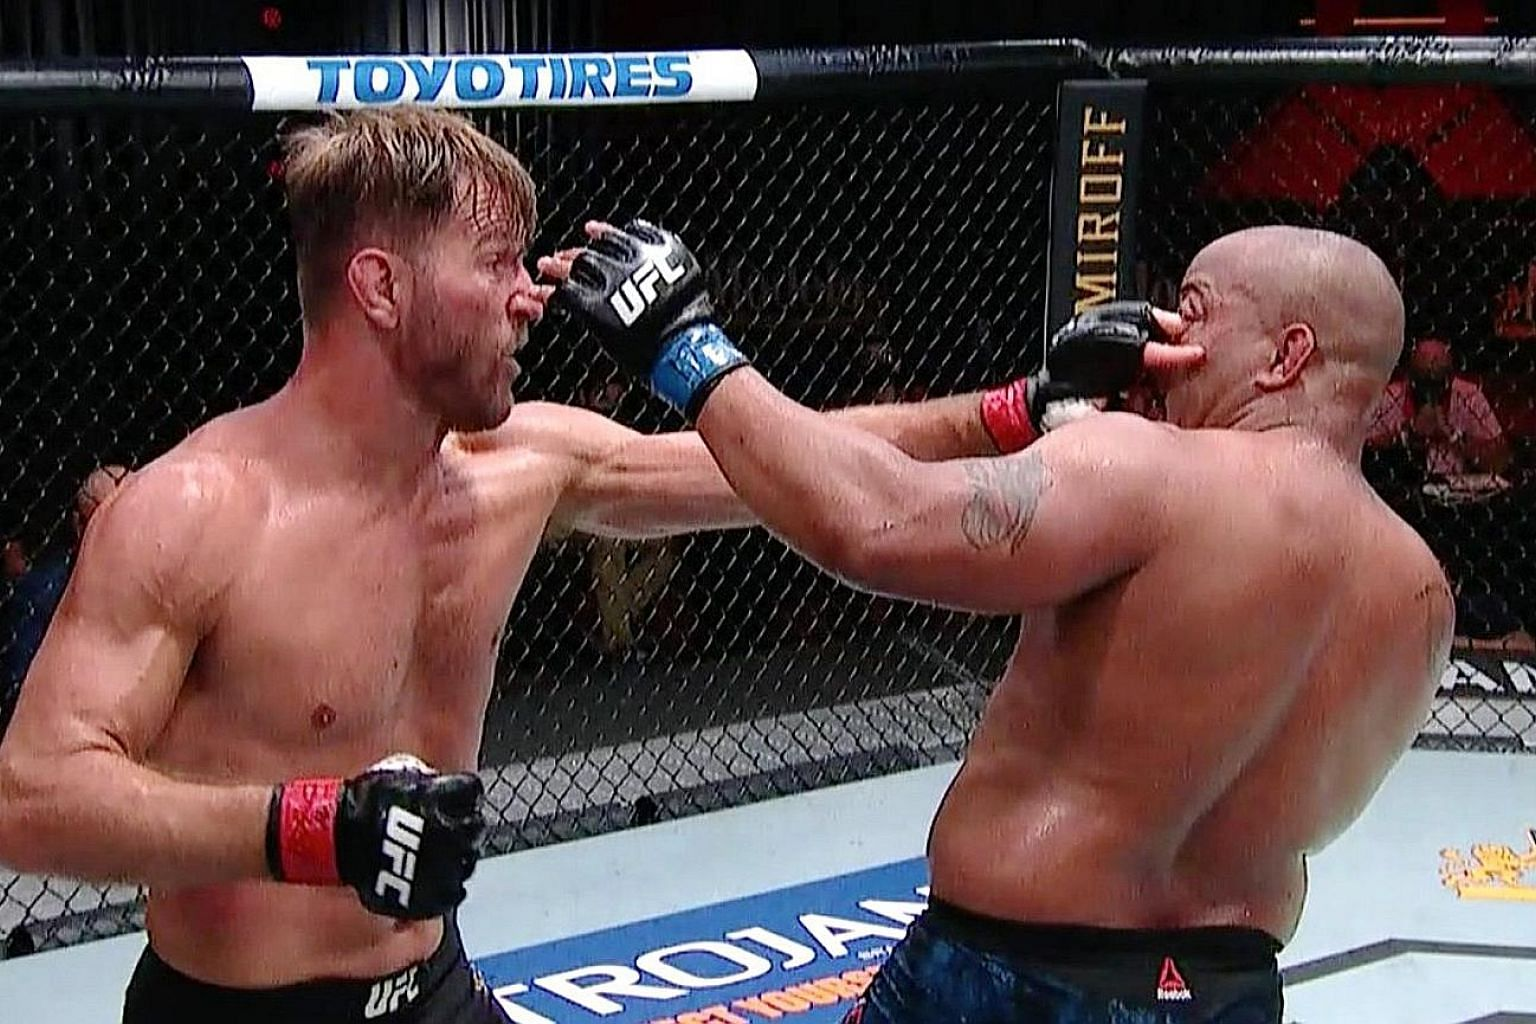 Stipe Miocic poking Daniel Cormier in the eye in the third round of the main fight of UFC 252 in Las Vegas on Saturday. The former Ultimate Fighting Championship (UFC) light heavyweight and heavyweight champion confirmed that he was retiring at age 4